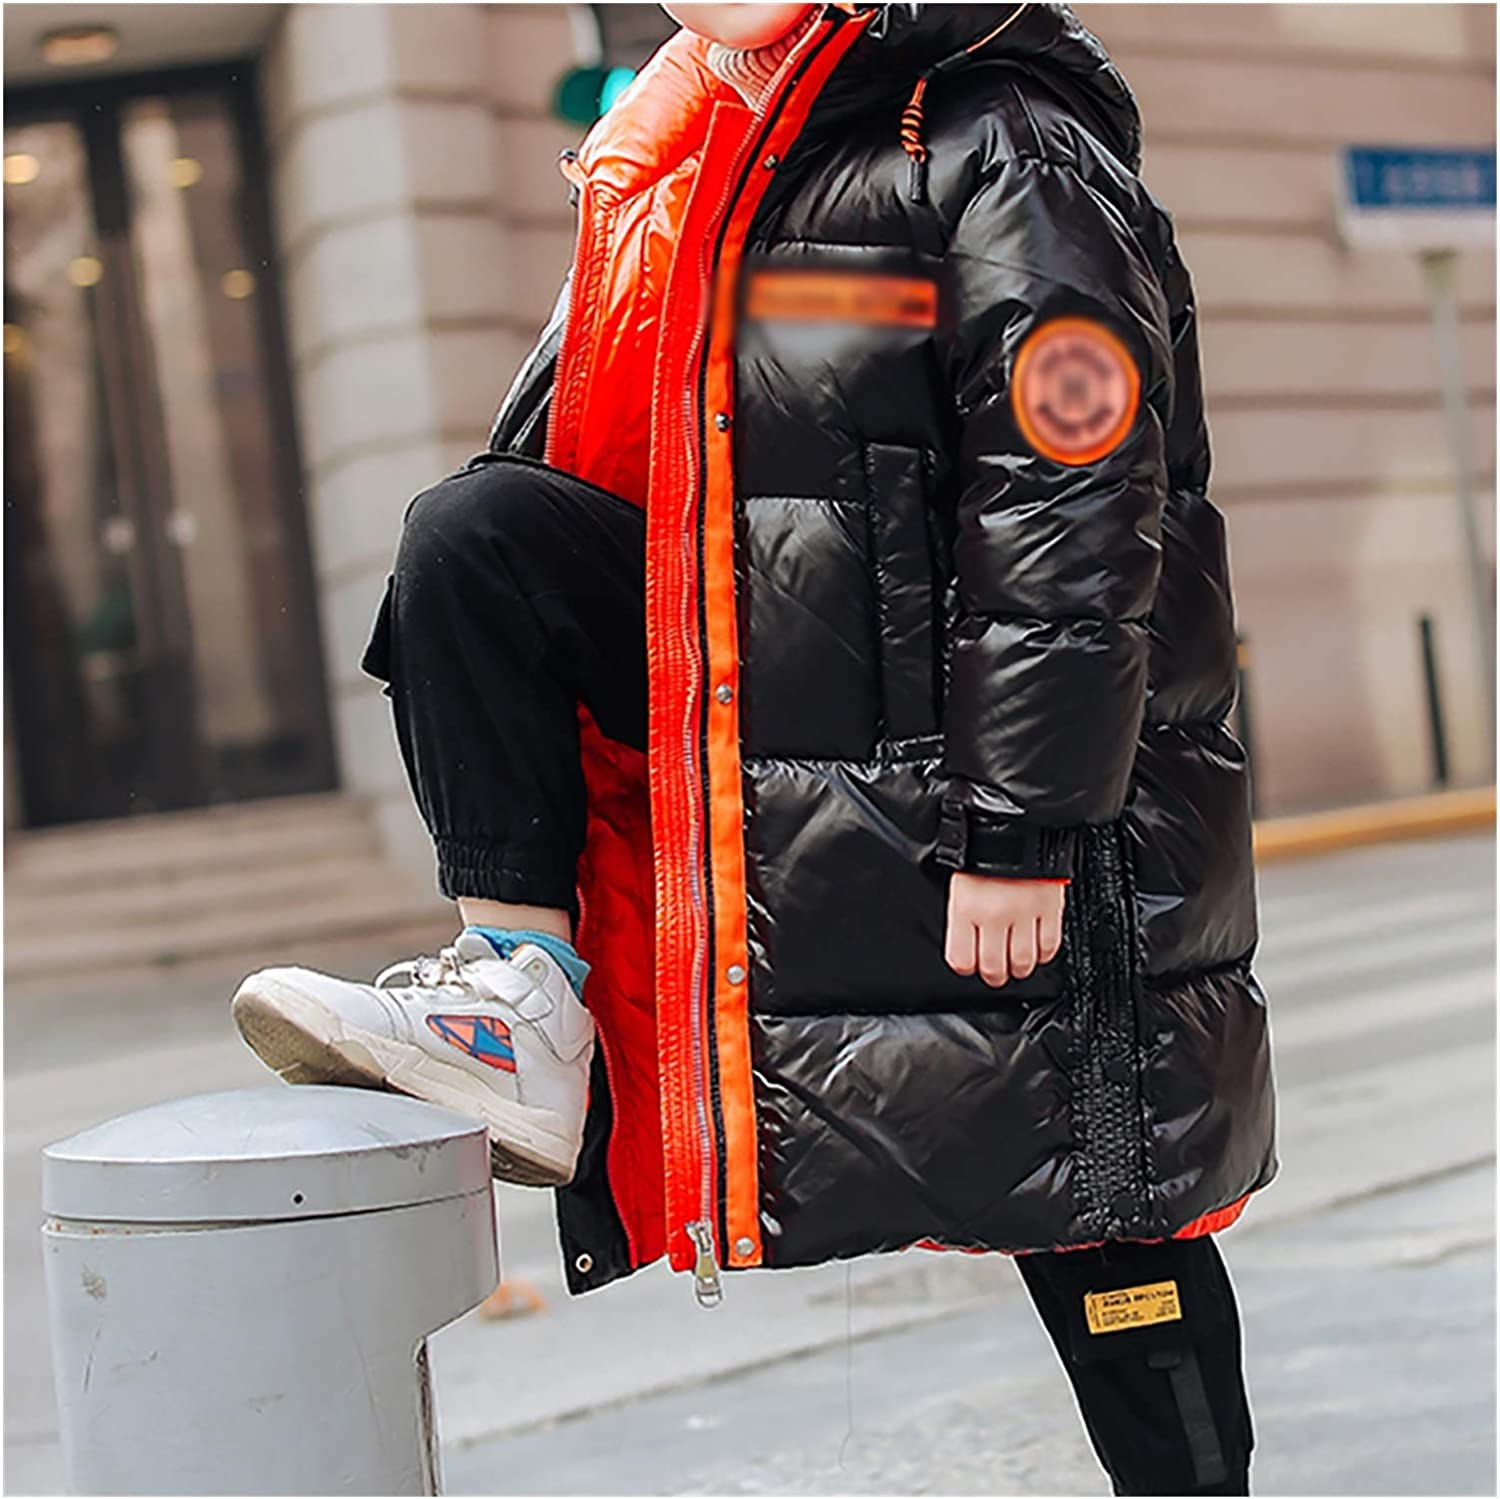 ZZL Coat Outdoor Boys' Puffer Parkas supreme Girls Down Jacket Pa High order